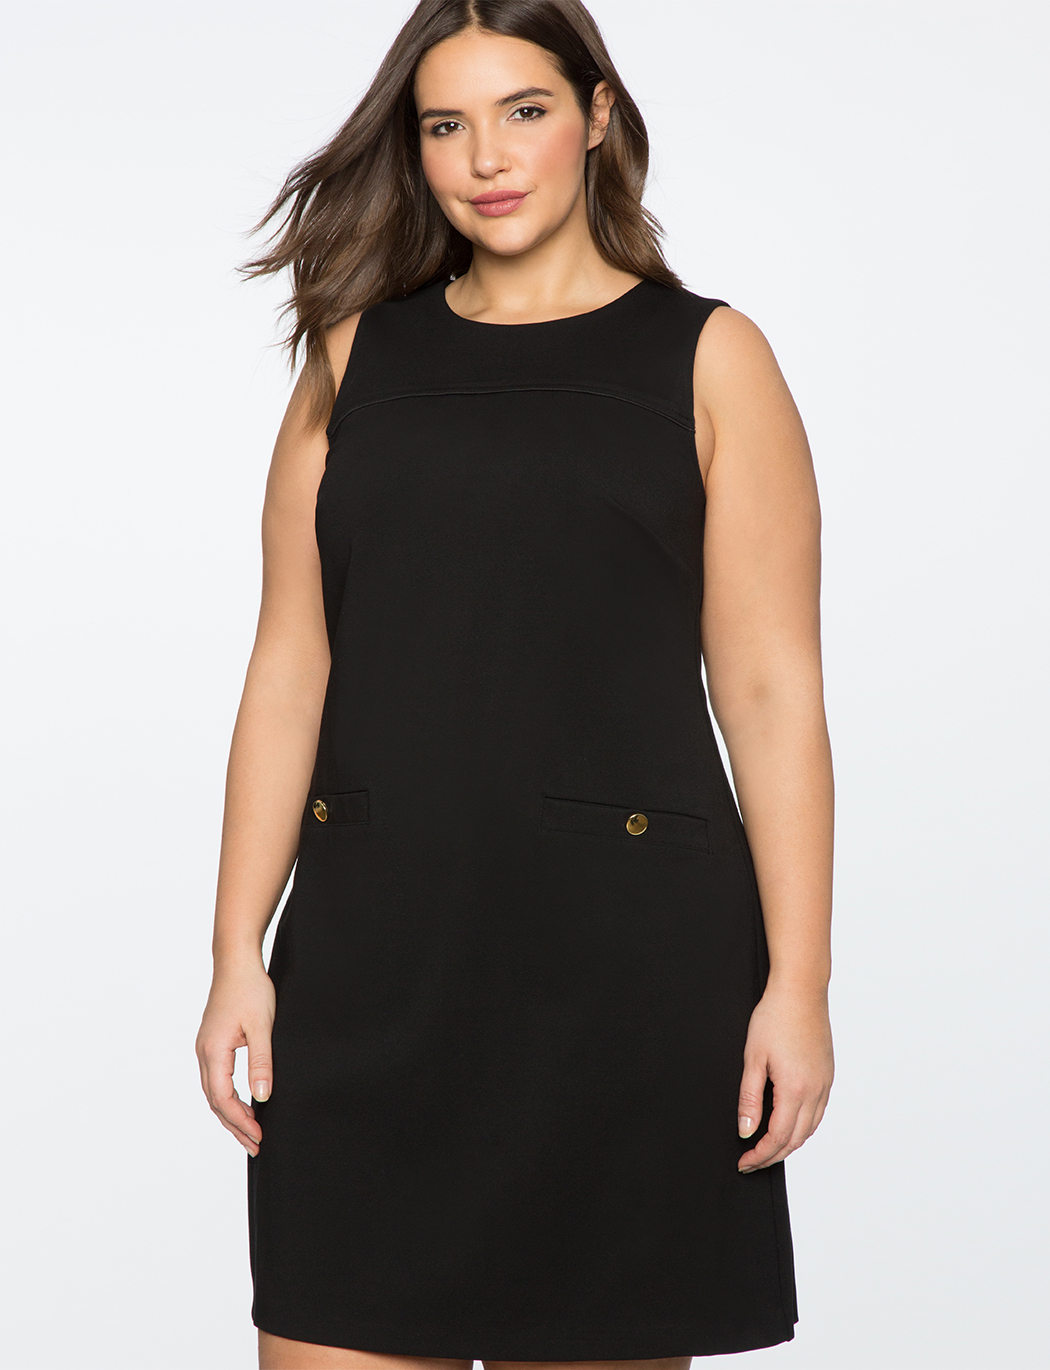 0e82fbb3266aa 9-to-5 Sleeveless Stretch Work Dress | Women's Plus Size Dresses ...